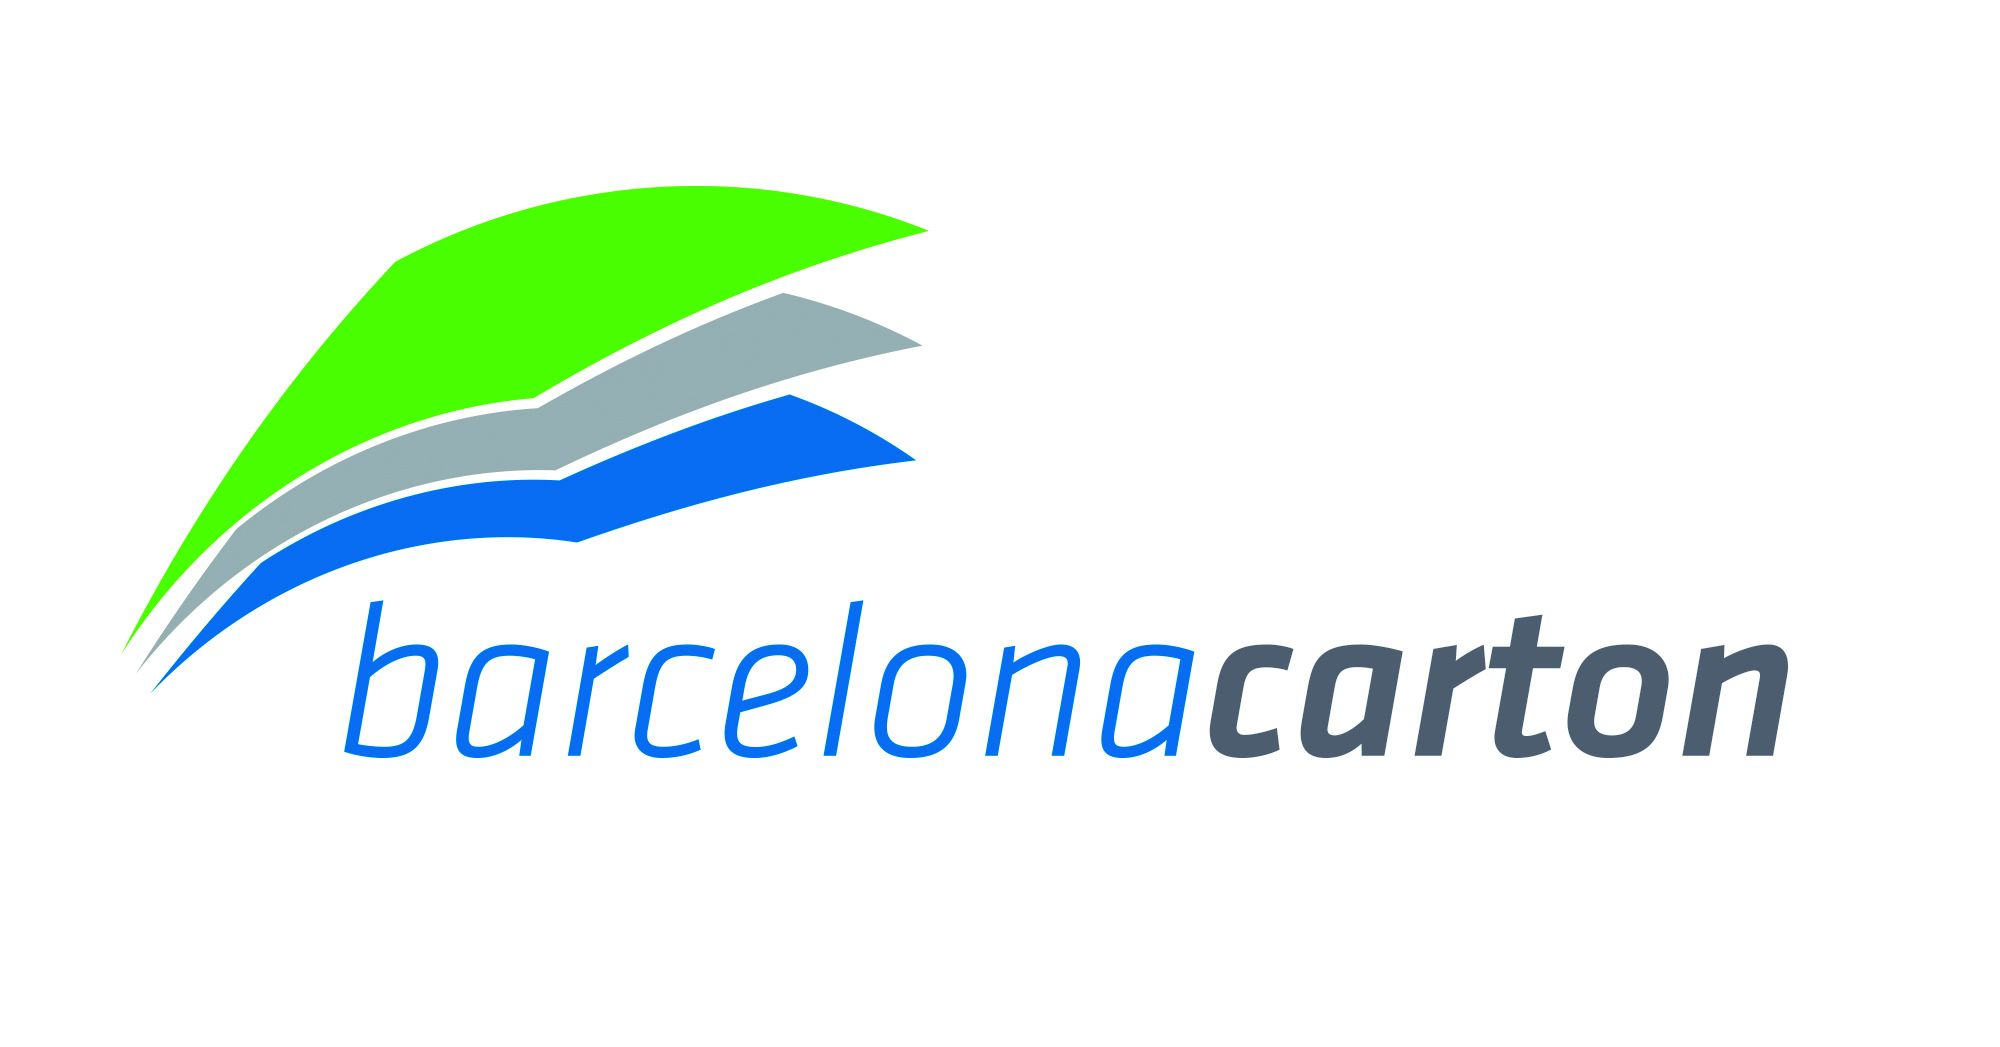 barcelona cartonboard invested in integrated web inspection system